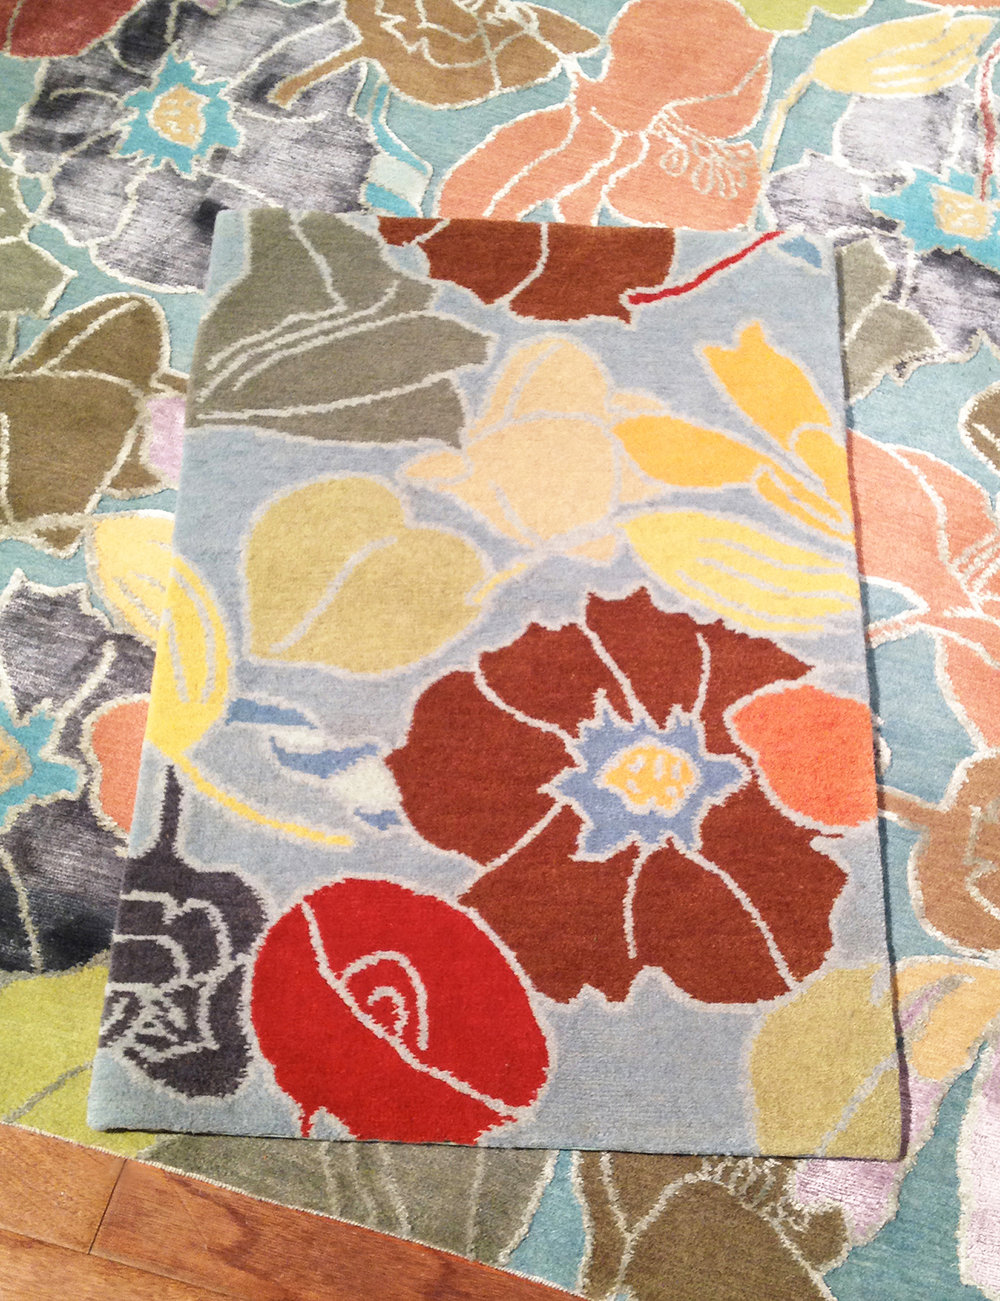 Best Flower rug, Milton Glaser for Lapchi